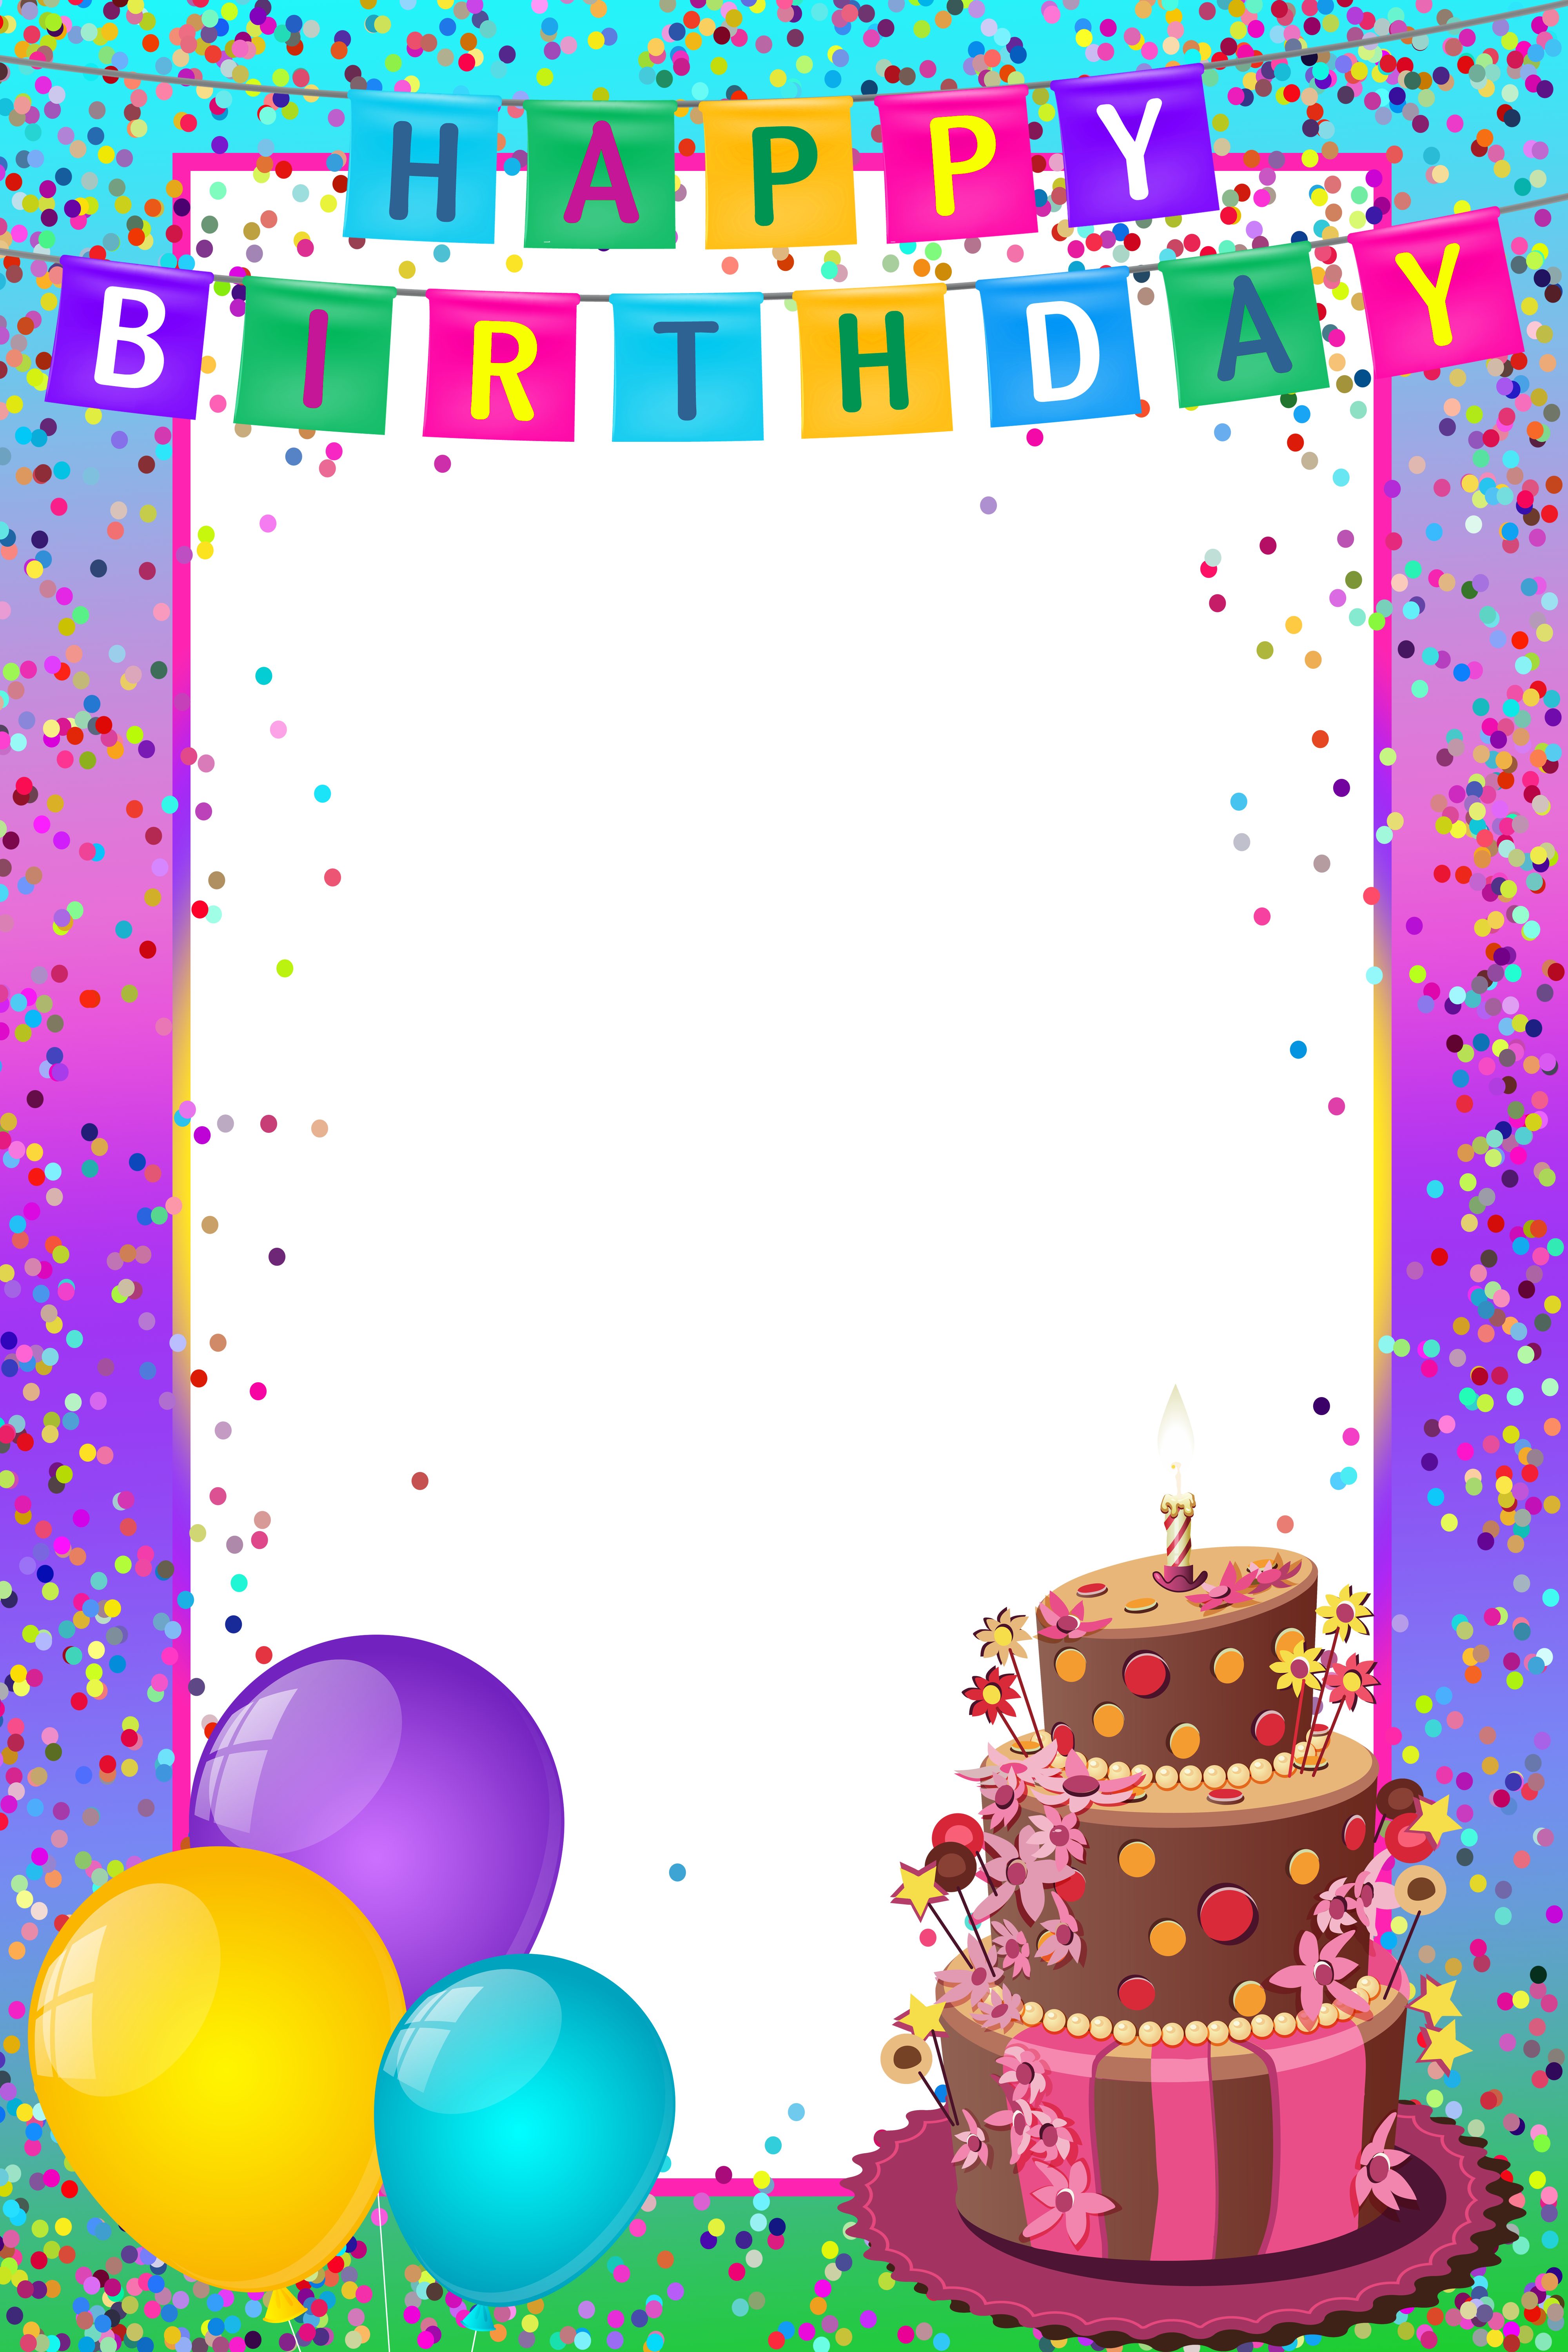 Happy birthday frames and borders clipart transparent library Happy Birthday PNG Transparent Multicolor Frame | Gallery ... transparent library